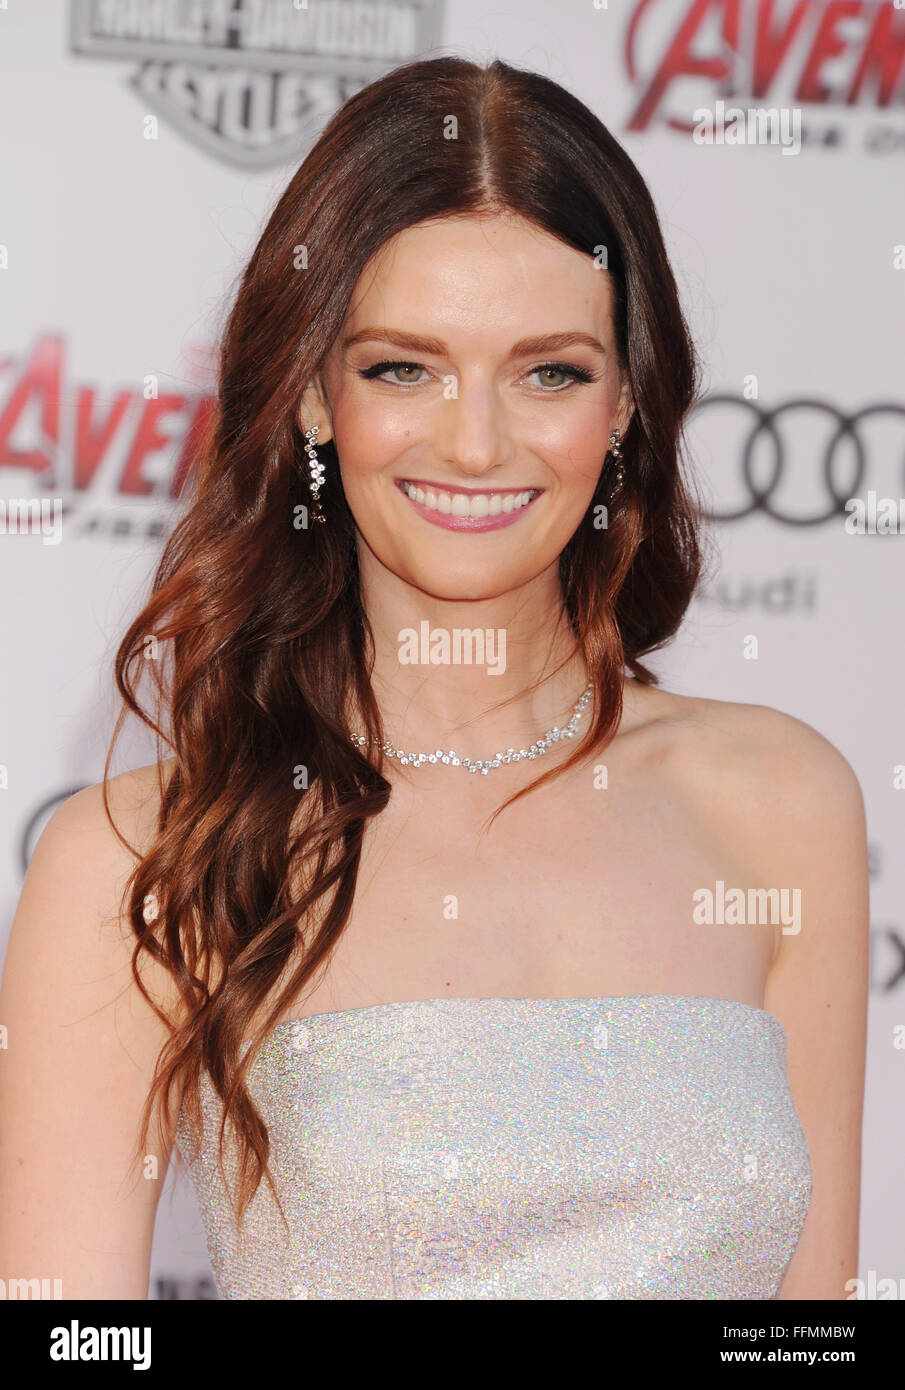 Actress/model Lydia Hearst arrives at the Marvel's 'Avengers: Age Of Ultron' - Los Angeles Premiere - Stock Image